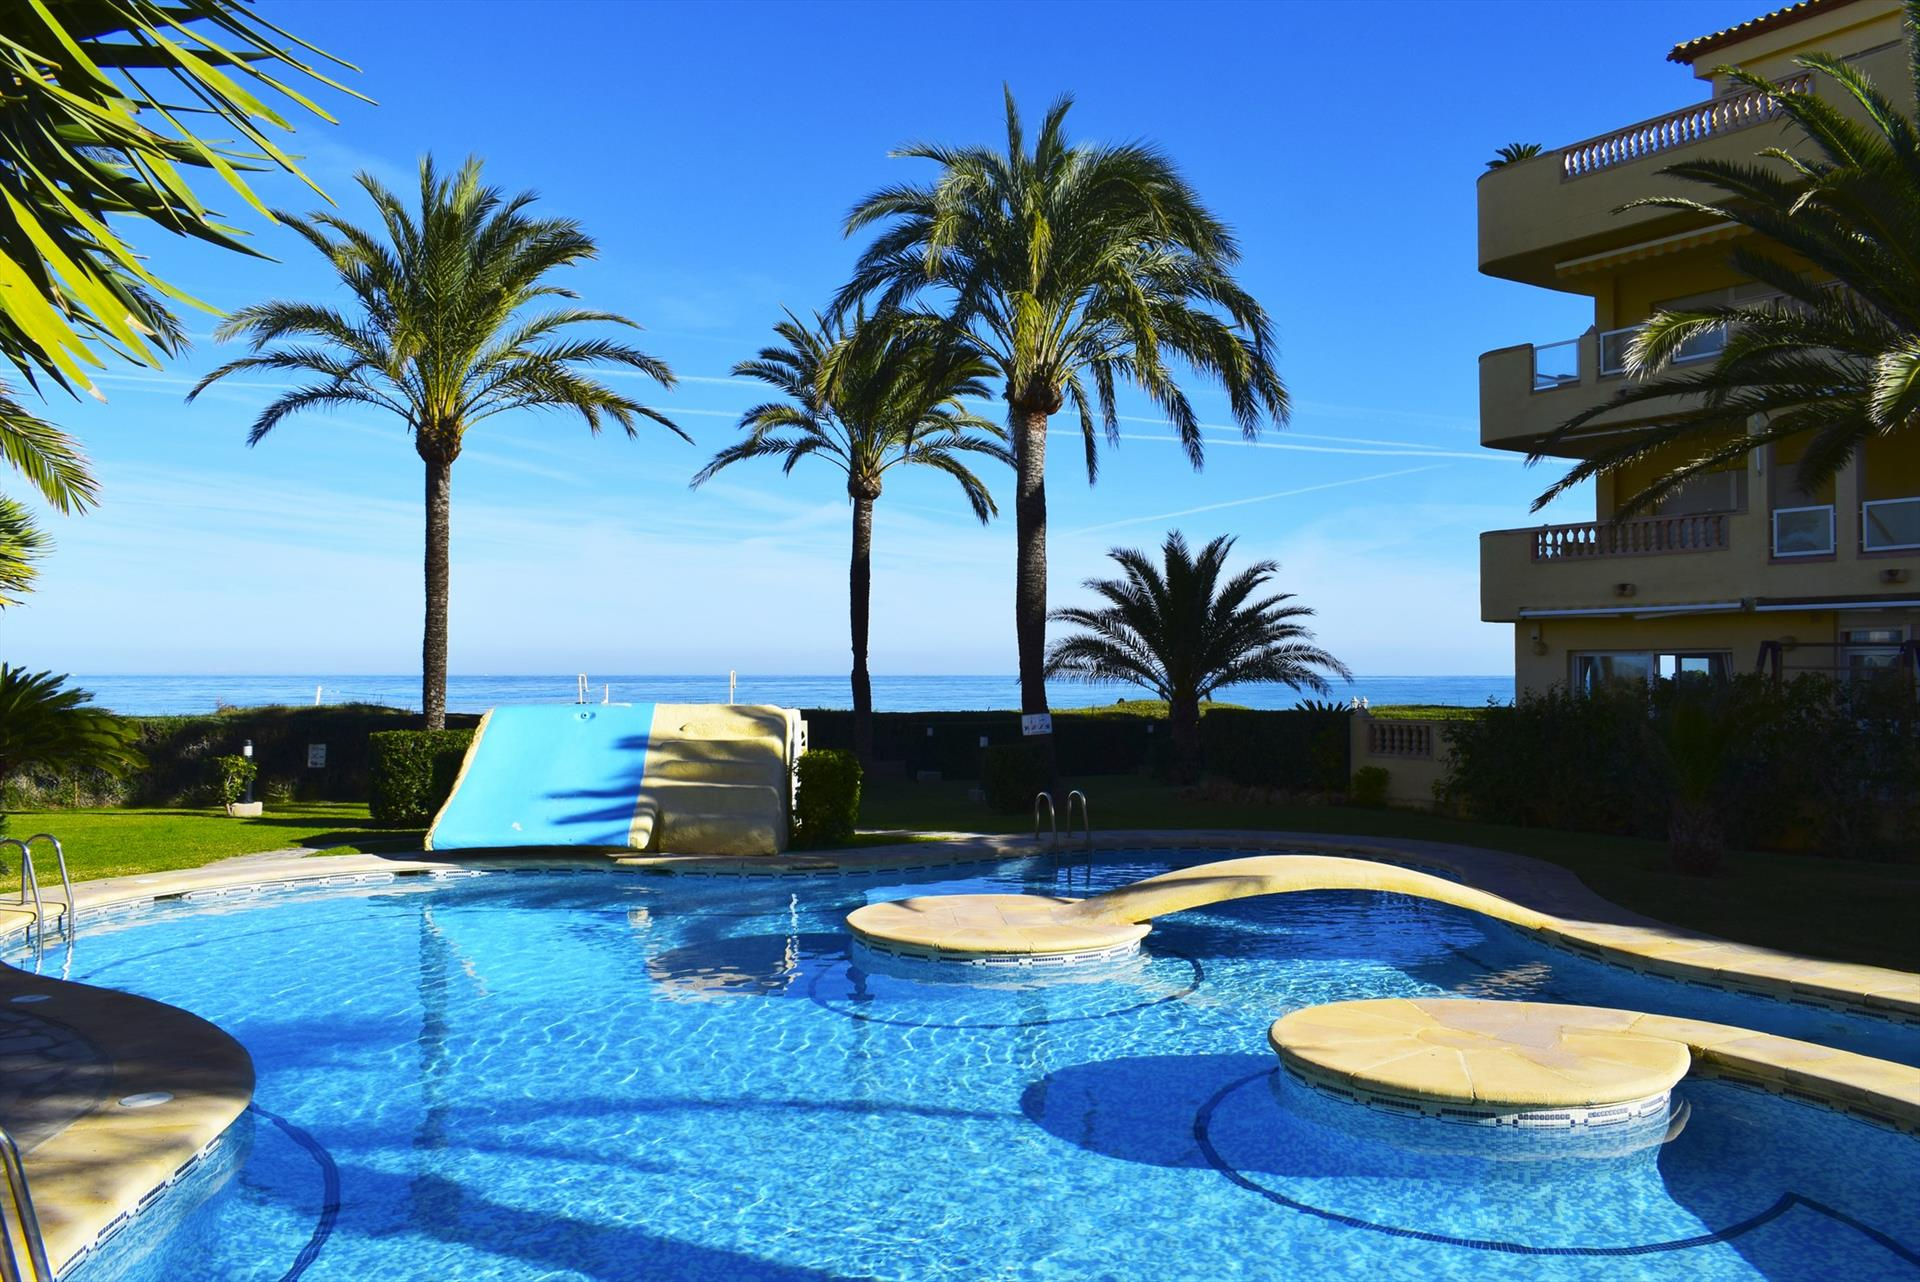 AP3203 Cuatro Dormitorios junto a la Playa y Piscina, Large and comfortable apartment in Denia, on the Costa Blanca, Spain  with communal pool for 7 persons.....